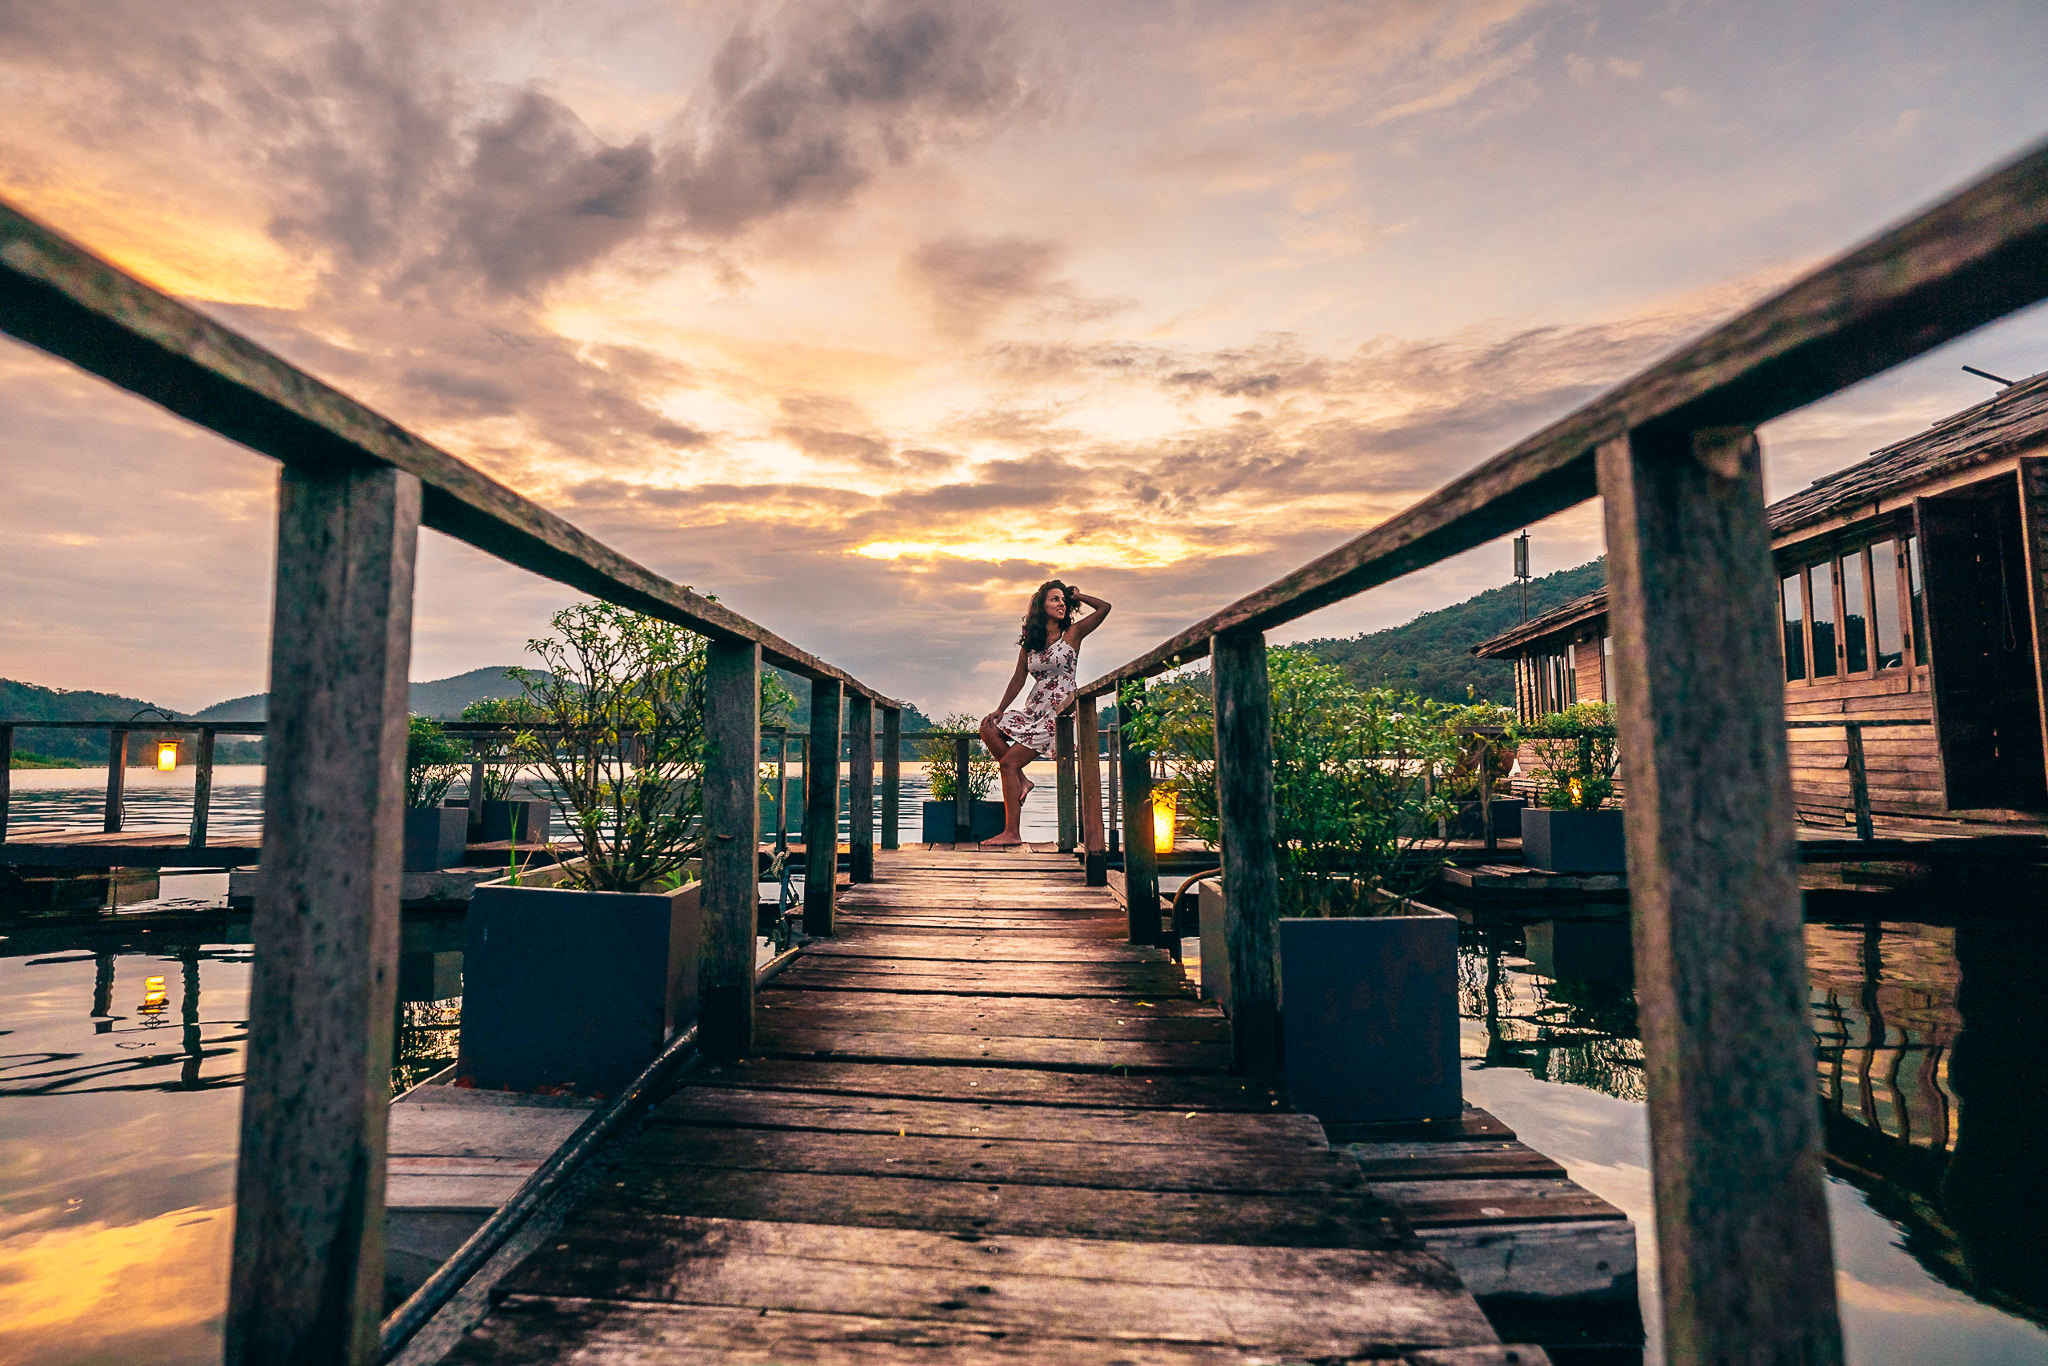 After placing Marta in front of this sunset near Chiang Mai, I noticed the wooden rails could be used as leading lines to direct attention towards her (considering how small she is in the frame), so I lowered myself to the ground to get the appropriate perspective.